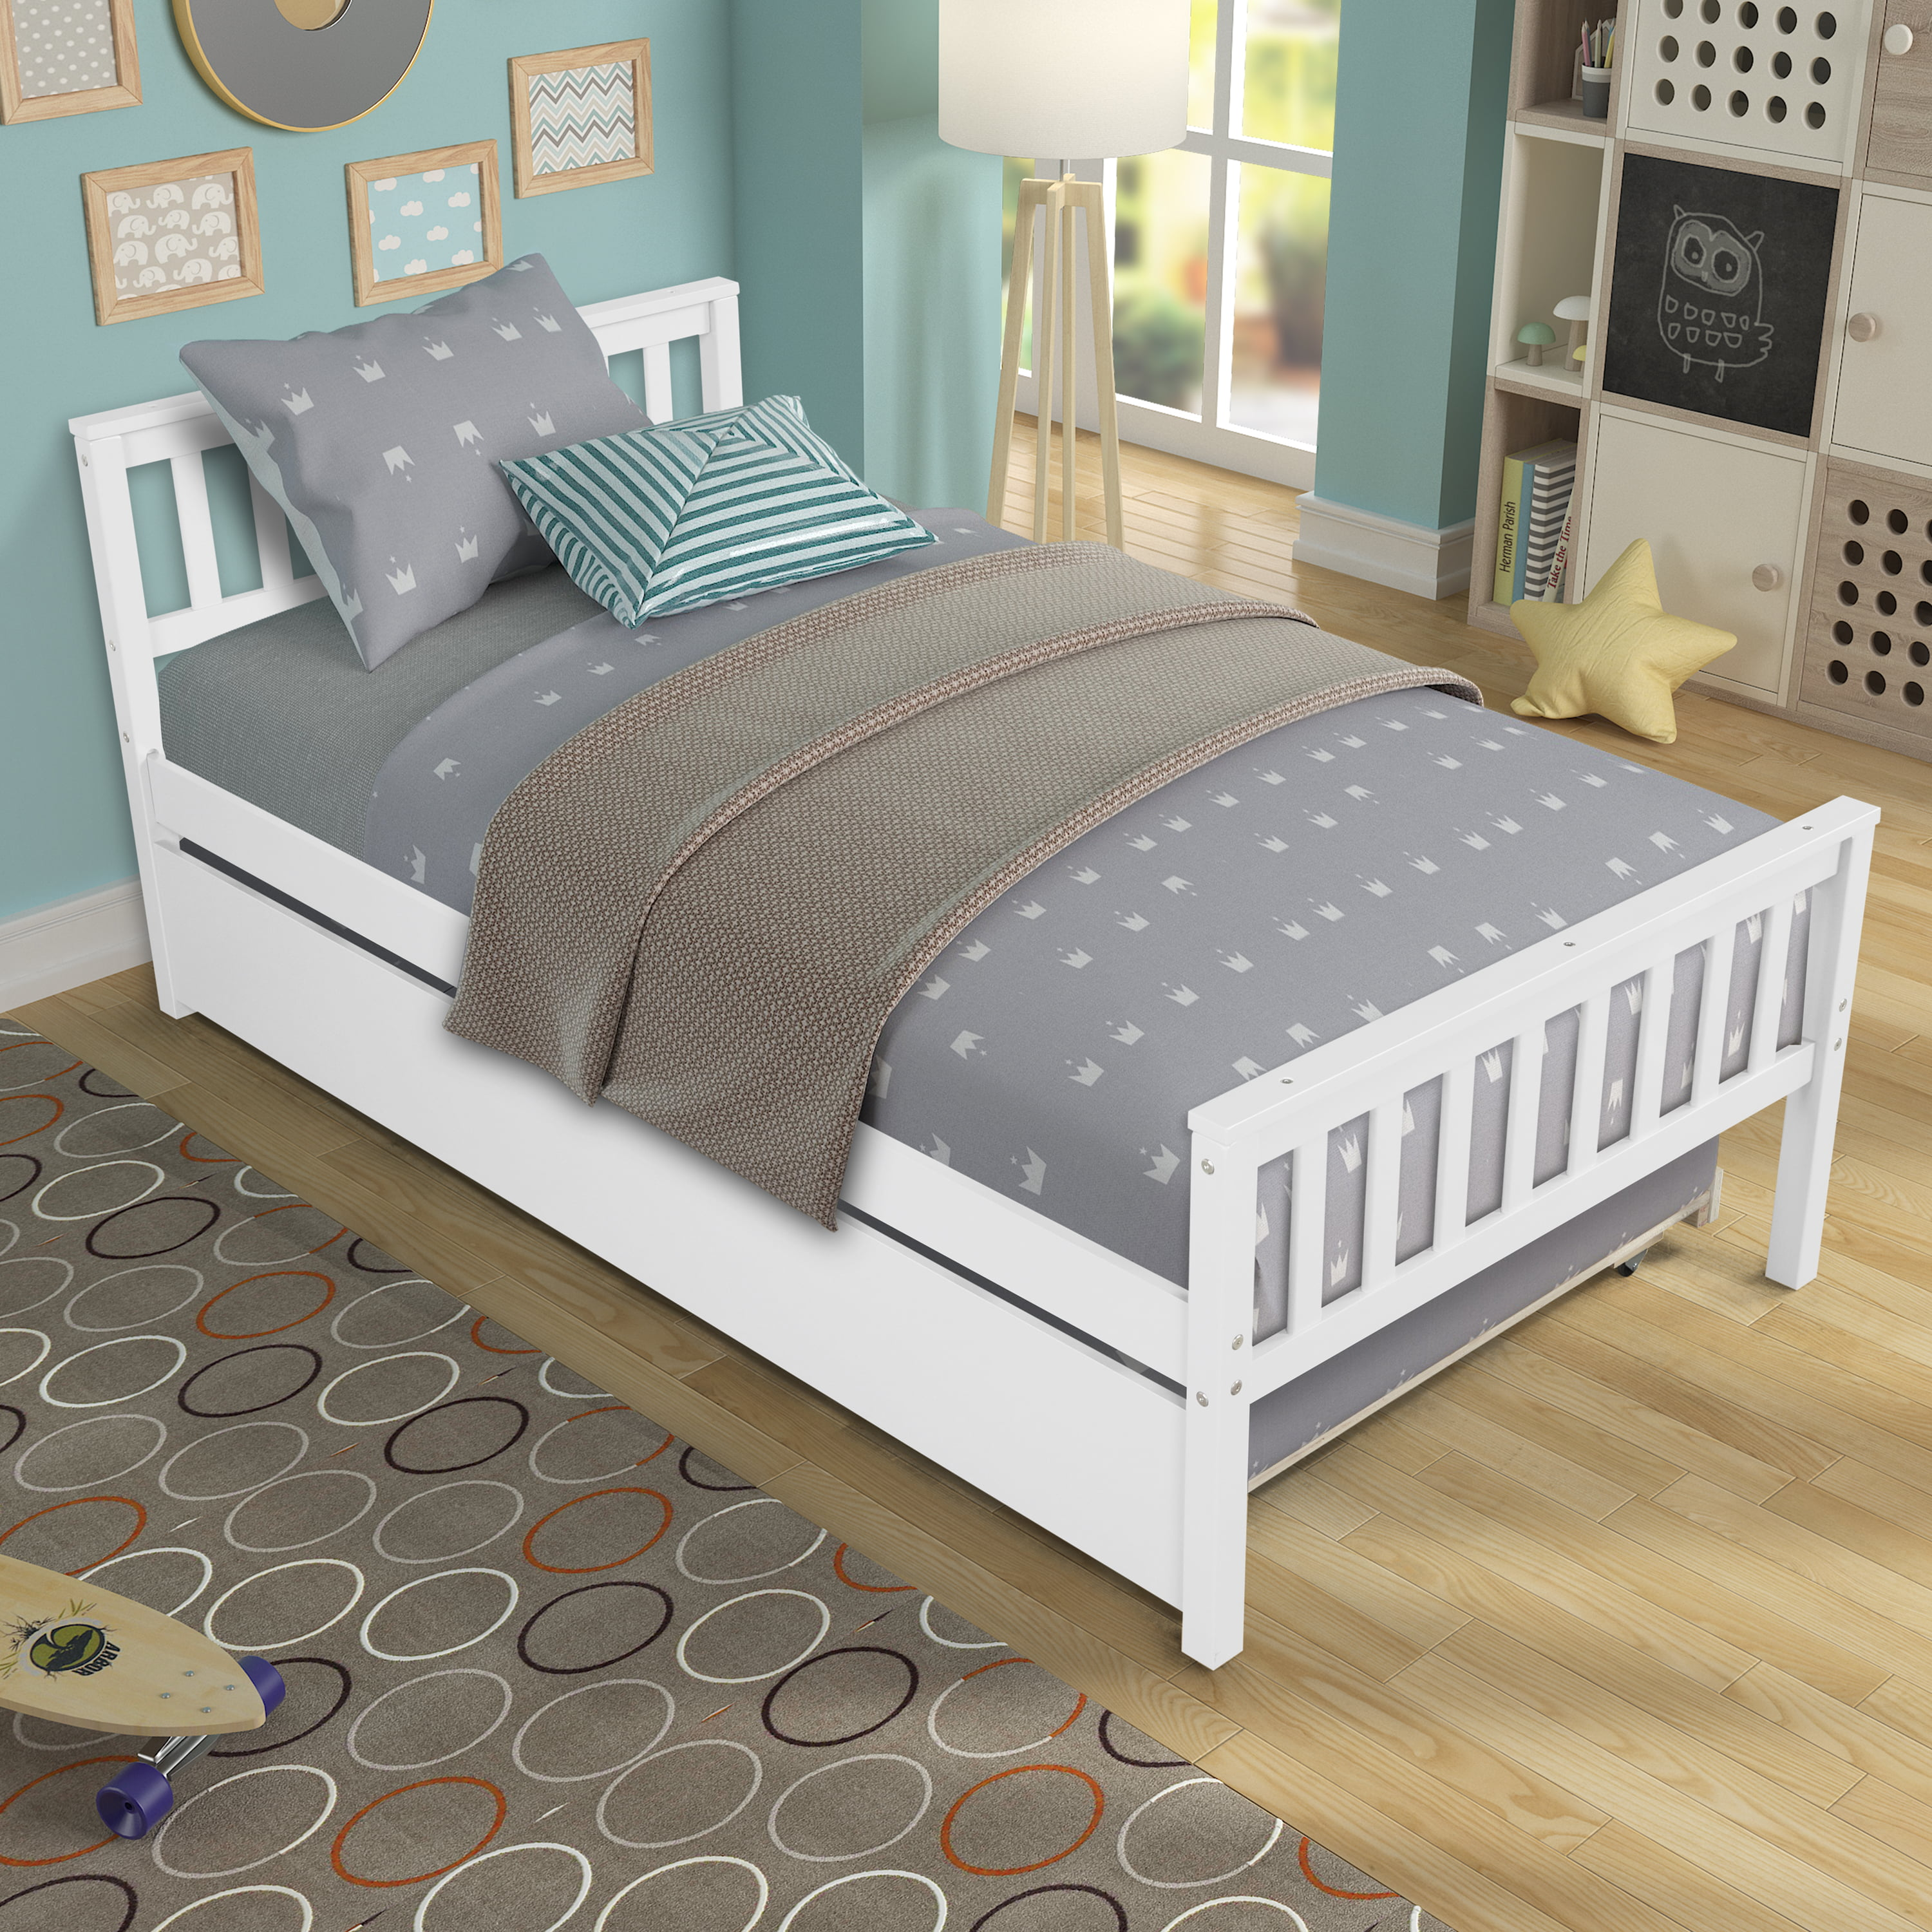 Twin Bed Frame with Trundle Bed, YOFE Kids Twin Bed Frame ...